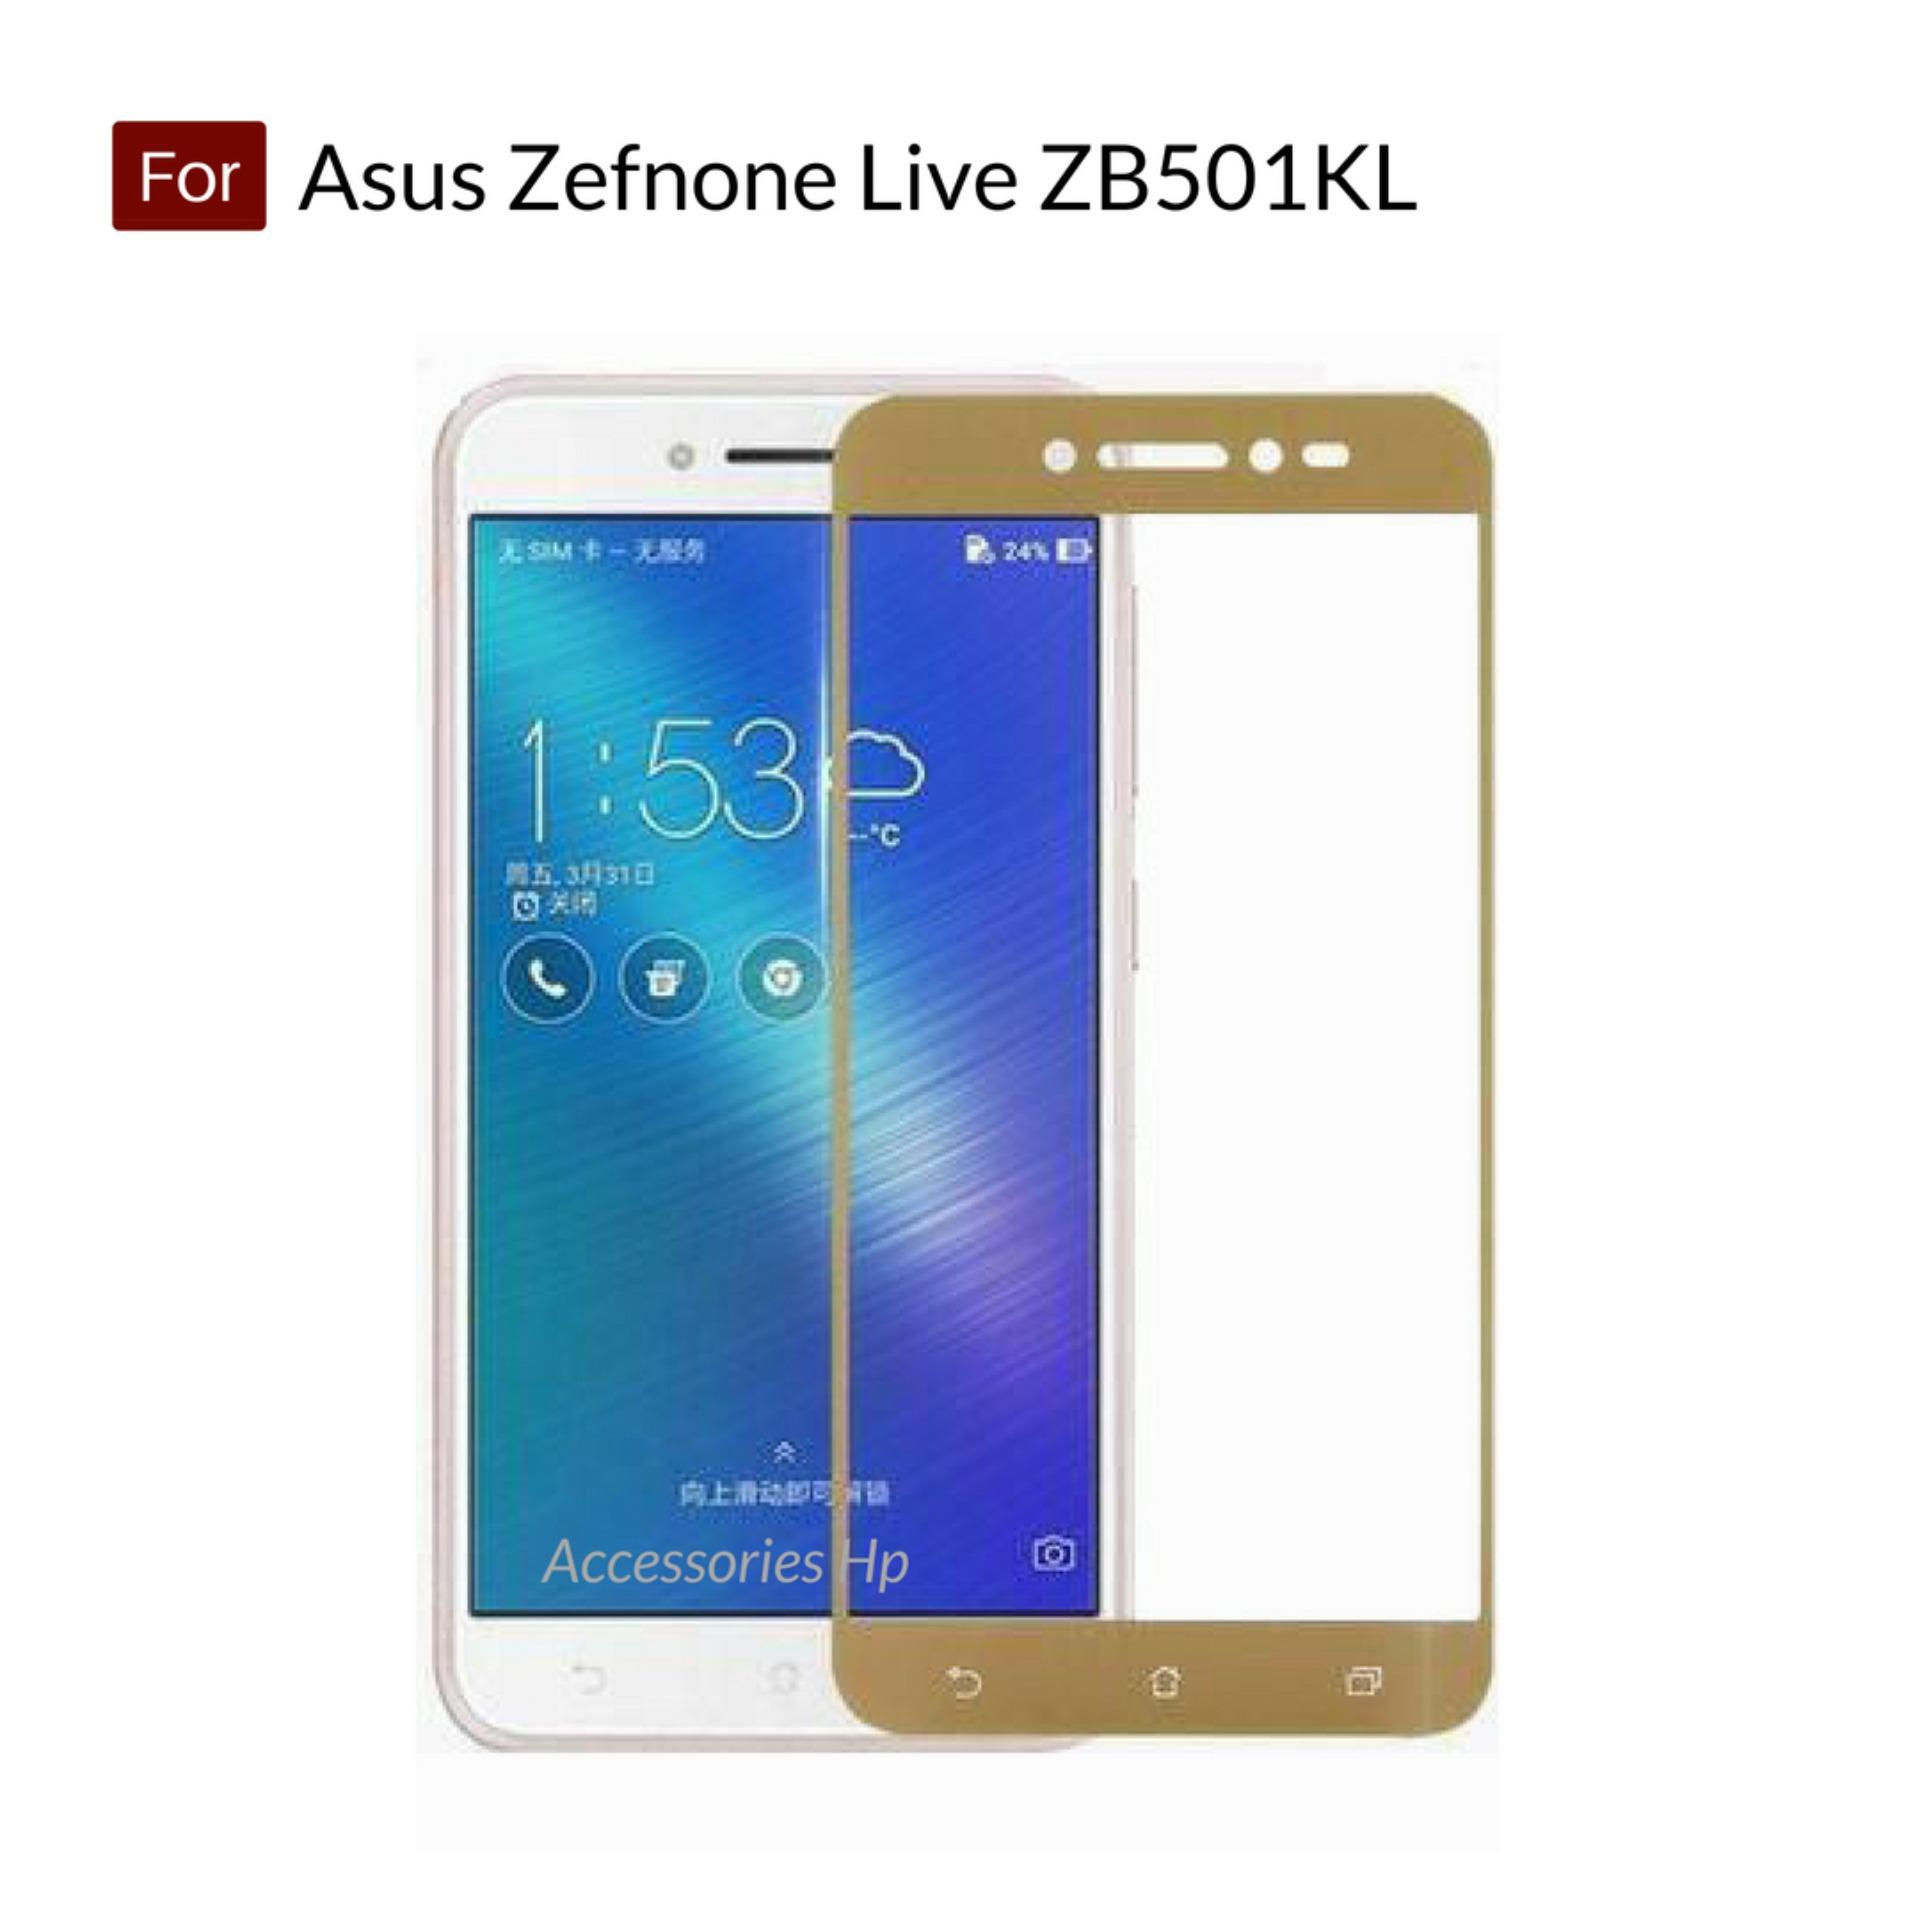 Accessories Hp Full Cover Tempered Glass Warna Screen Protector for Asus Zenfone Live ZB501KL - Gol